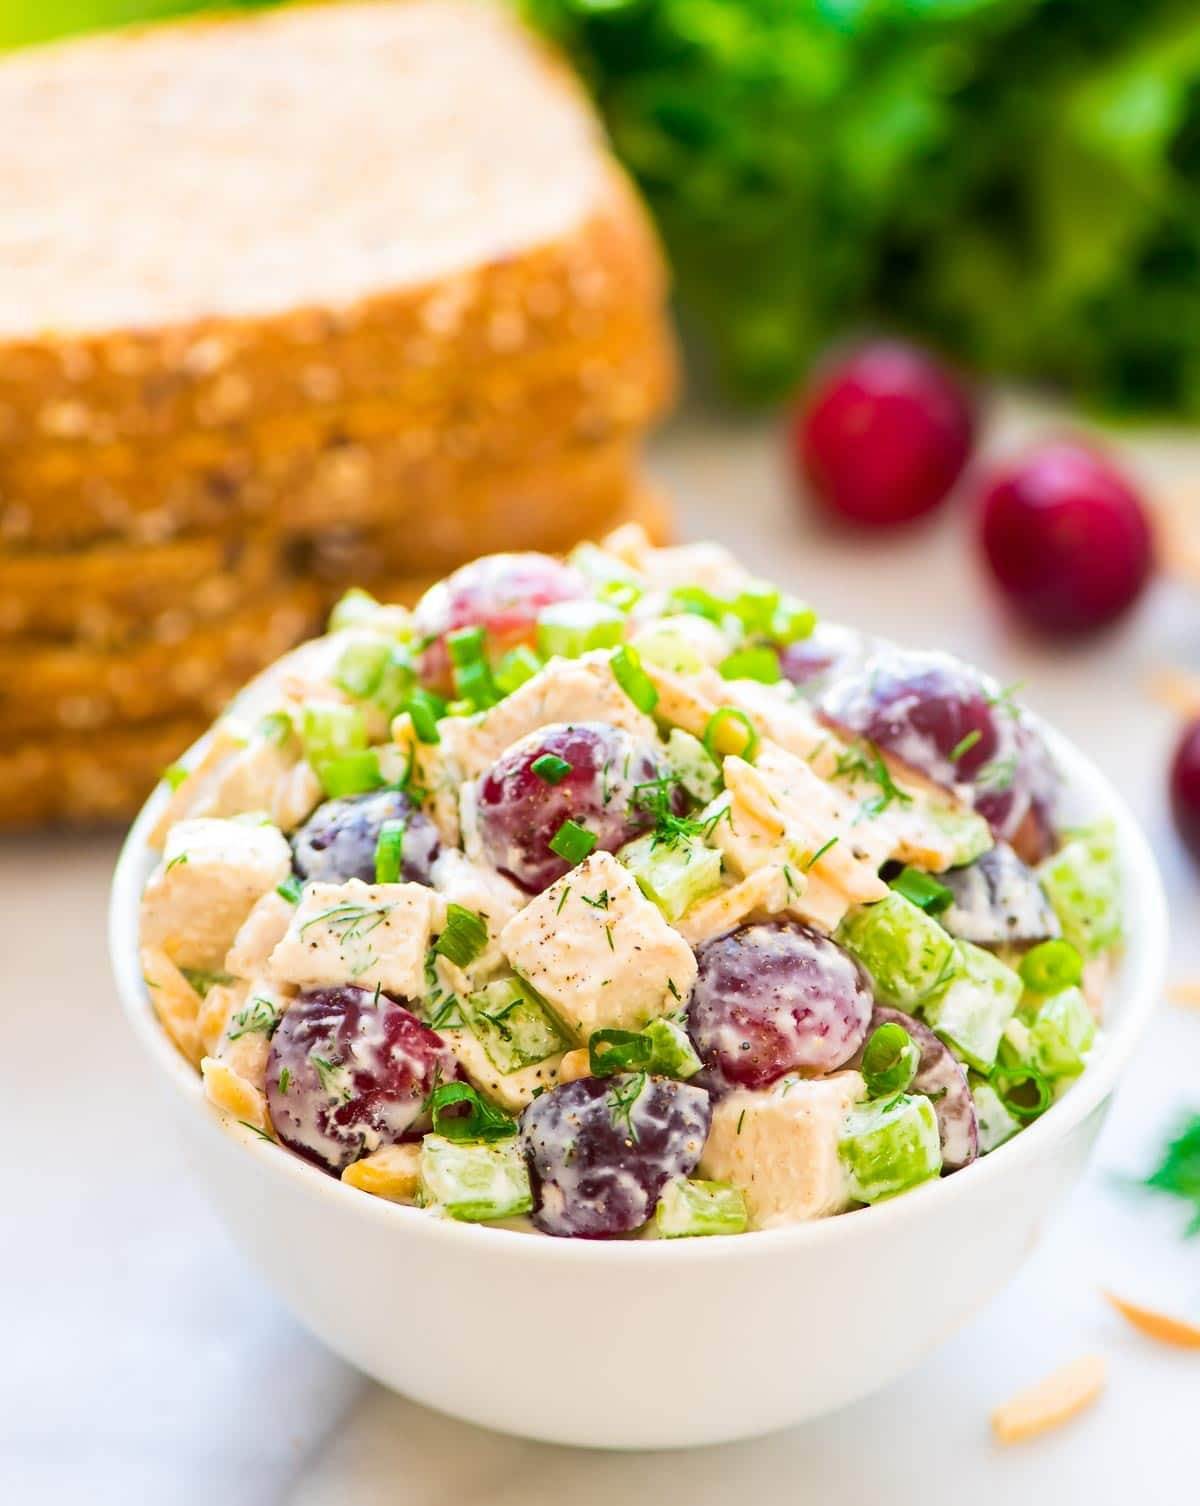 Healthy Chicken Salad Recipe With Greek Yogurt  Greek Yogurt Chicken Salad with Dill